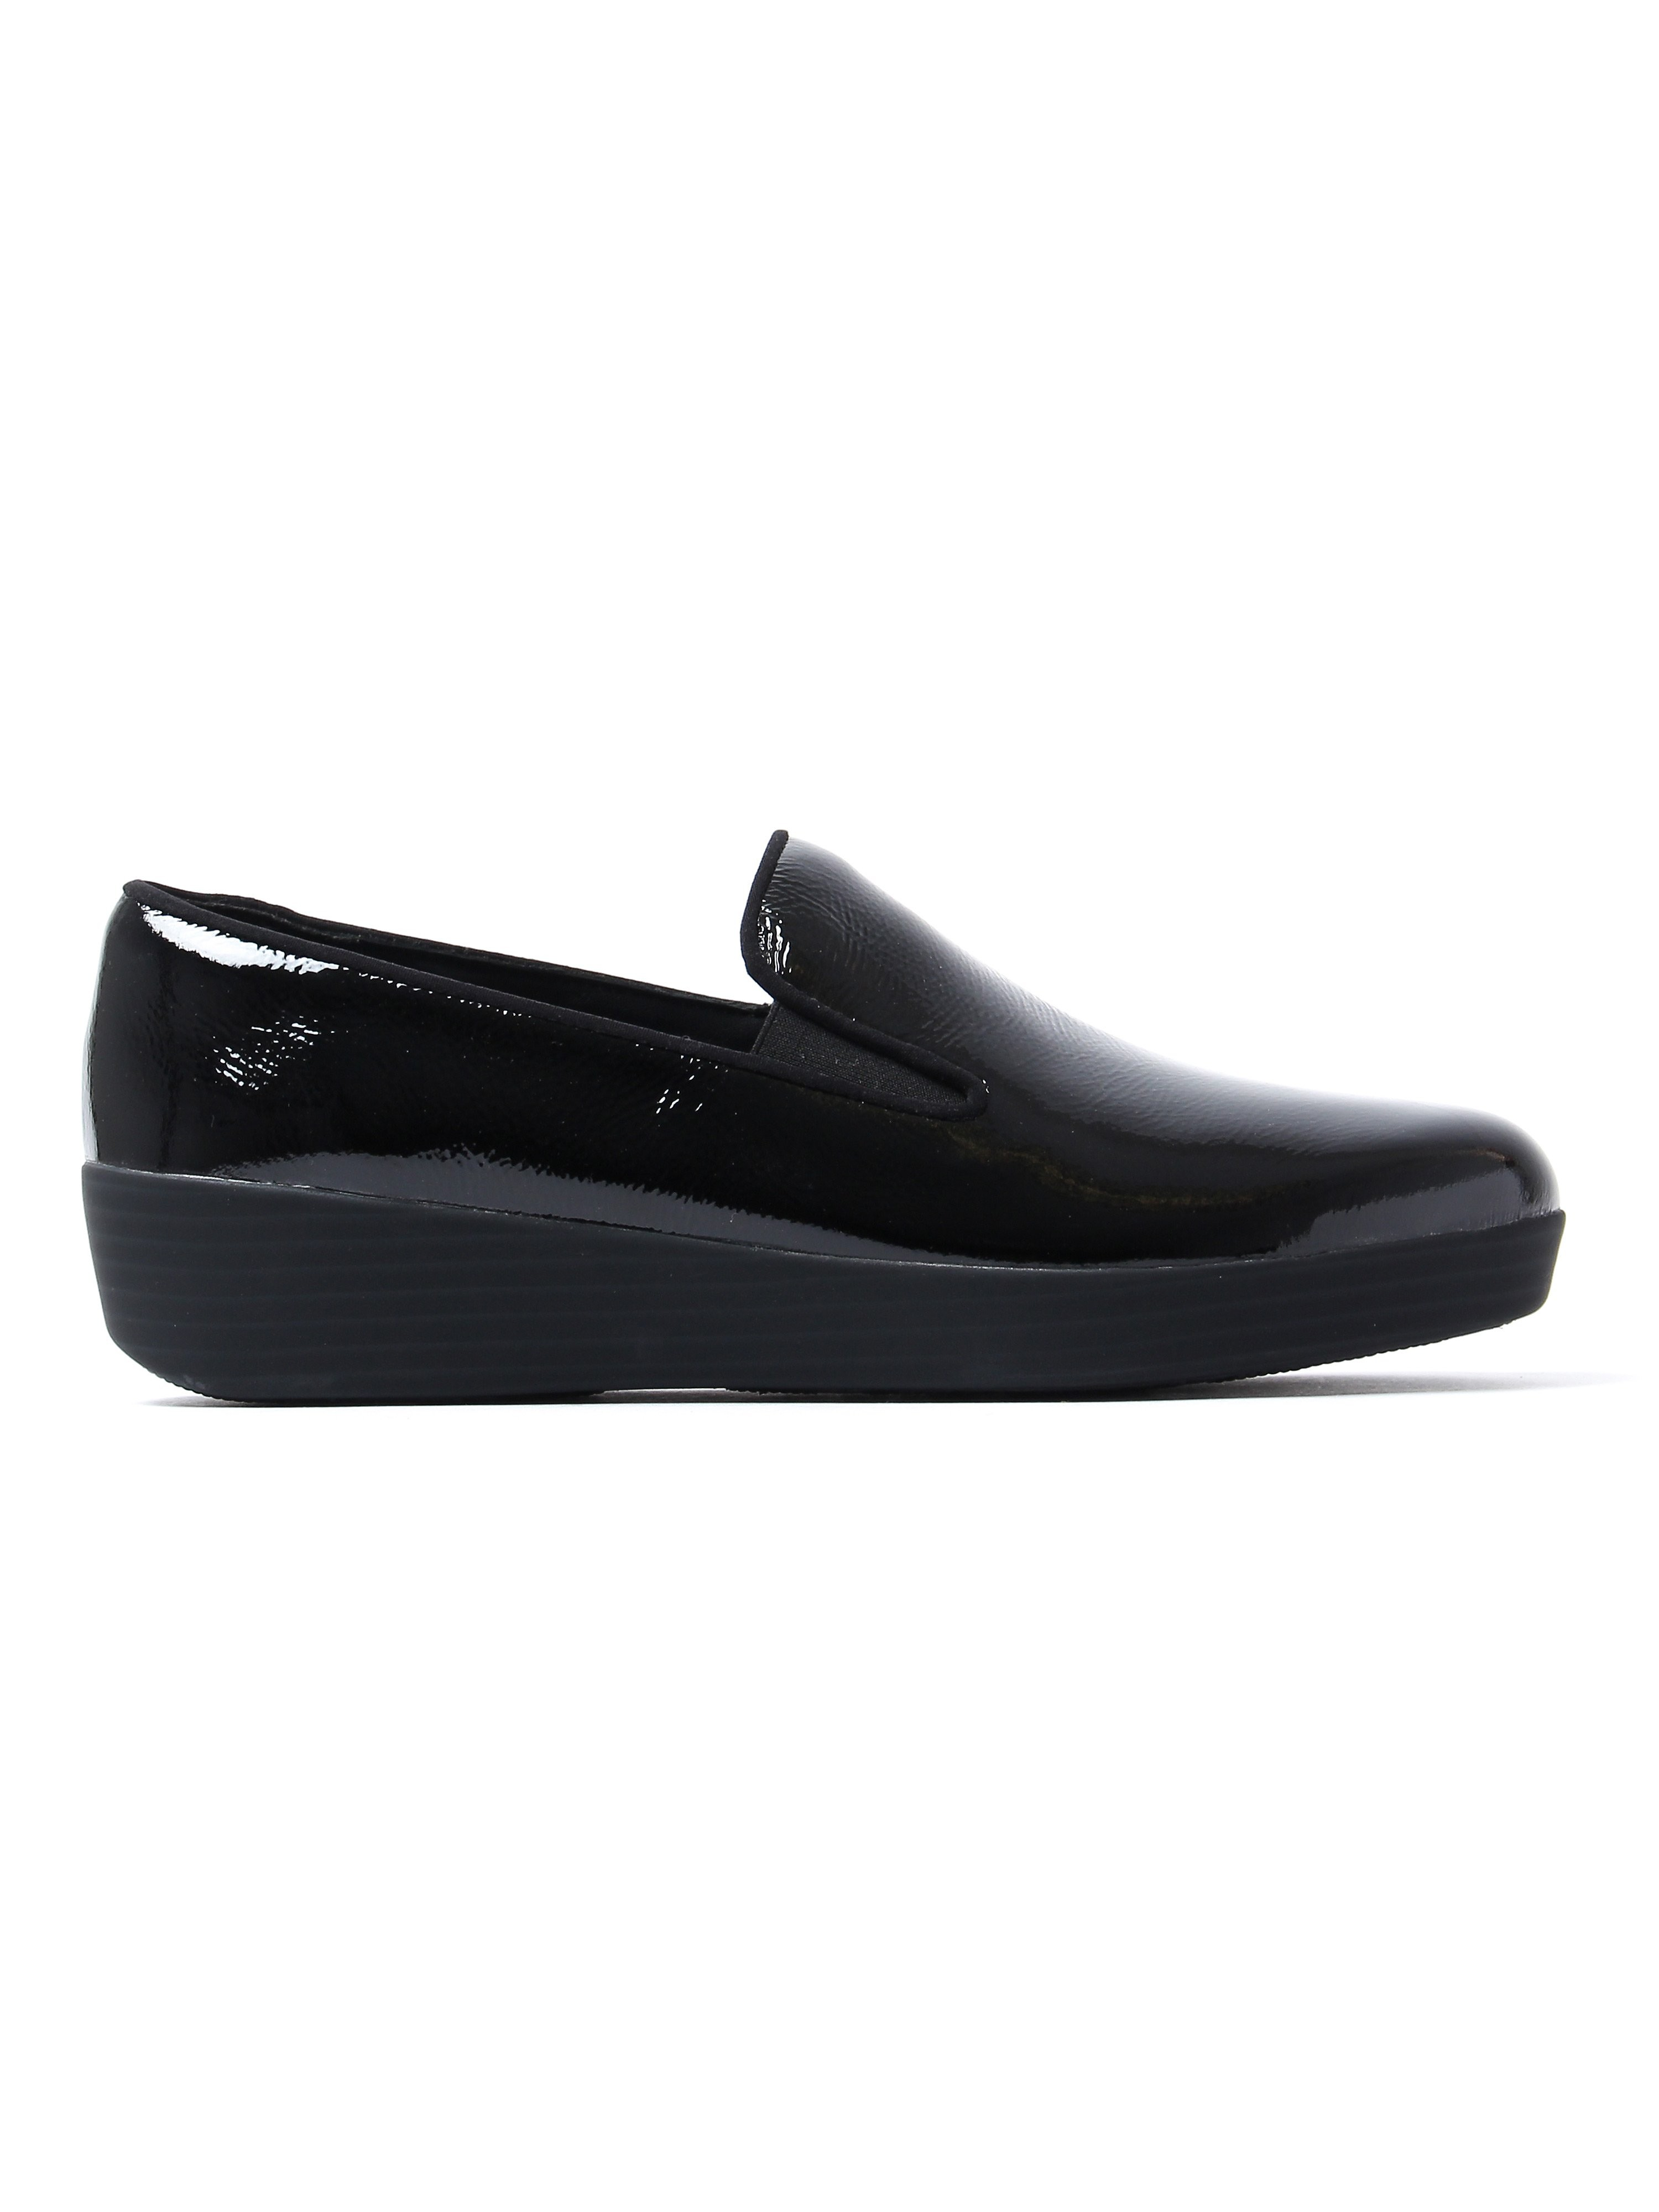 FitFlop Women's Superskate Loafers - Black Patent